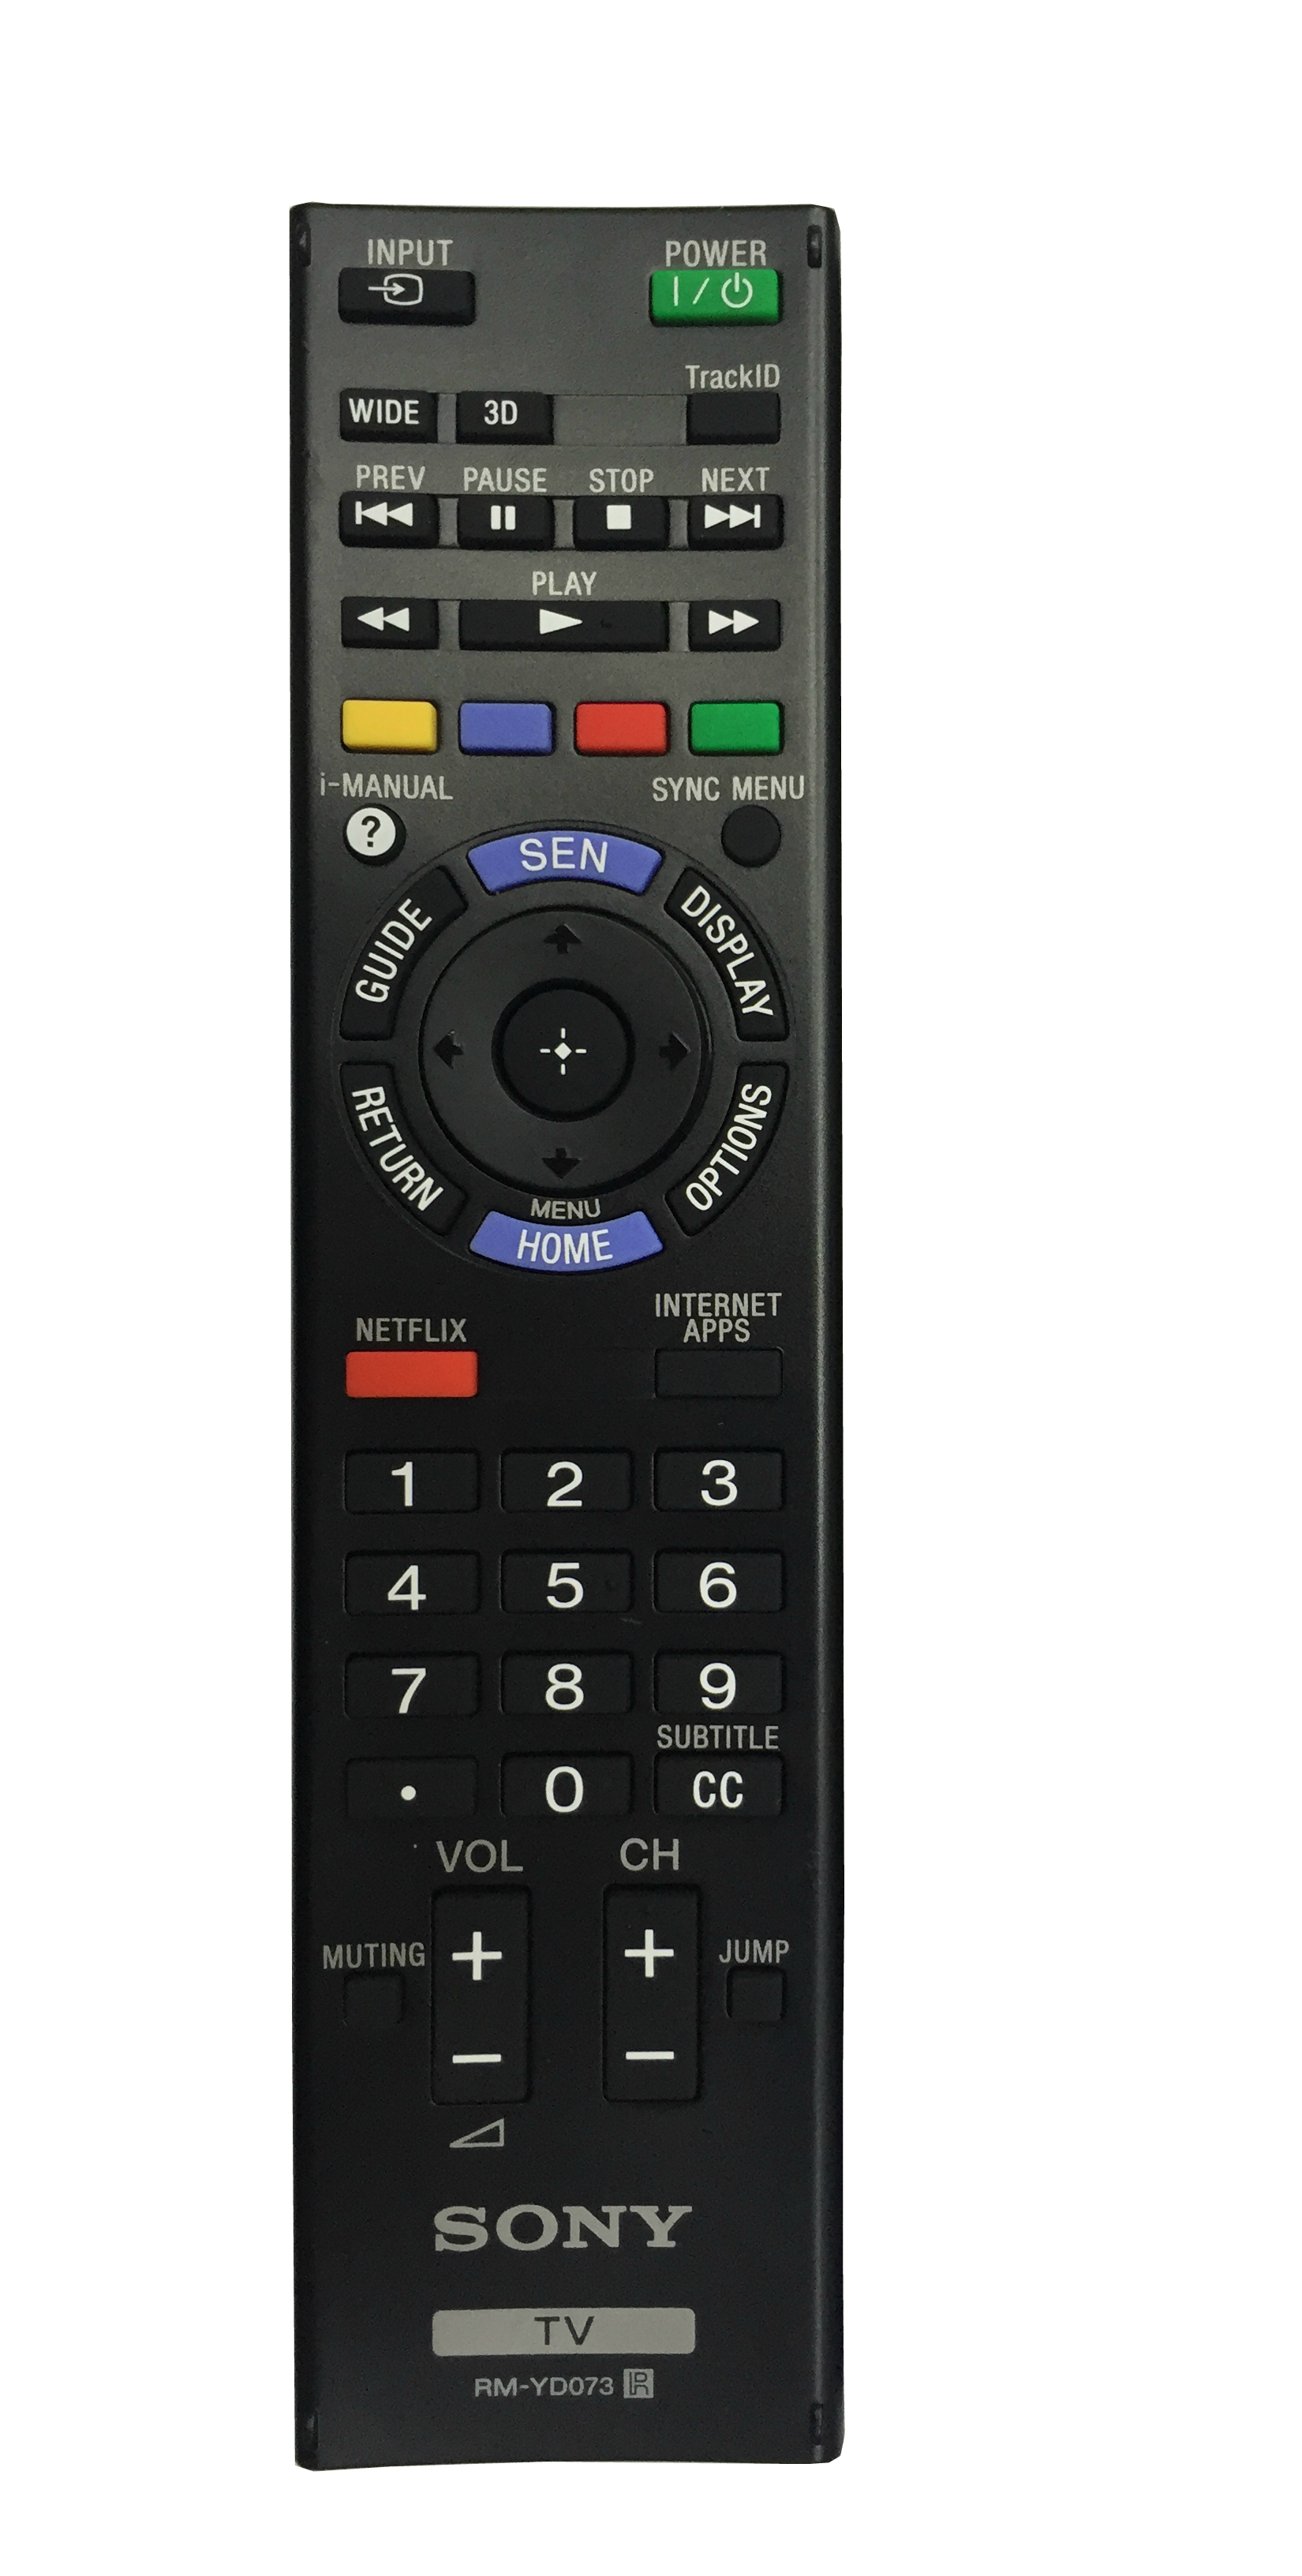 Rm Yd078 Sony Original Remote Control We Offer Original And New Replacement Remote Controls For Tv S Vcr S Audio Sys Remote Control Remote Remote Controls